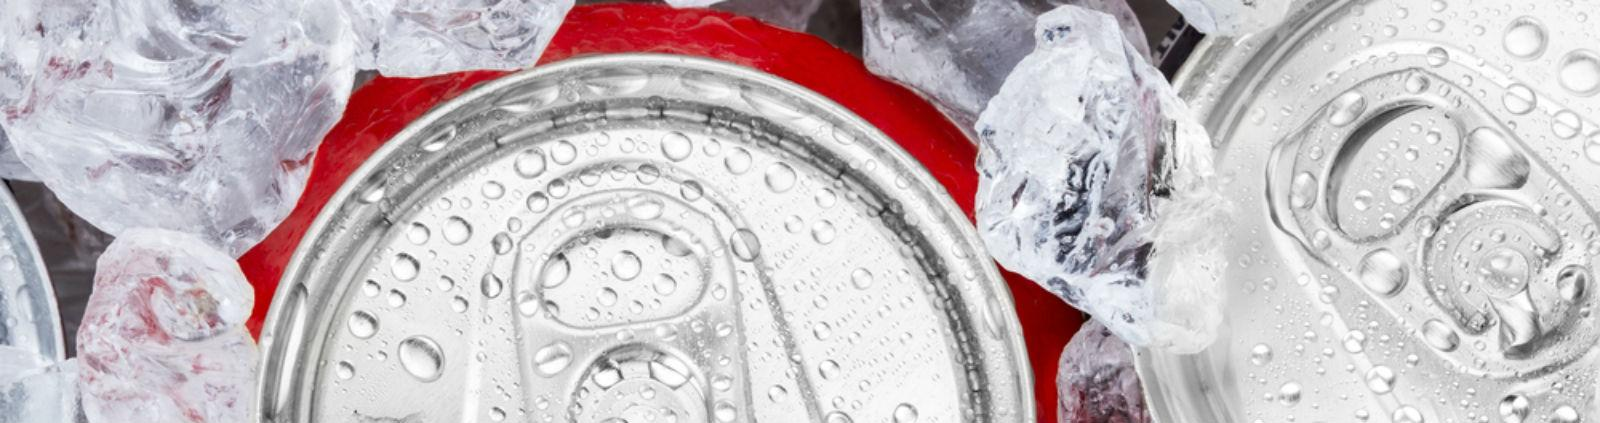 coca cola can surrounded by ice